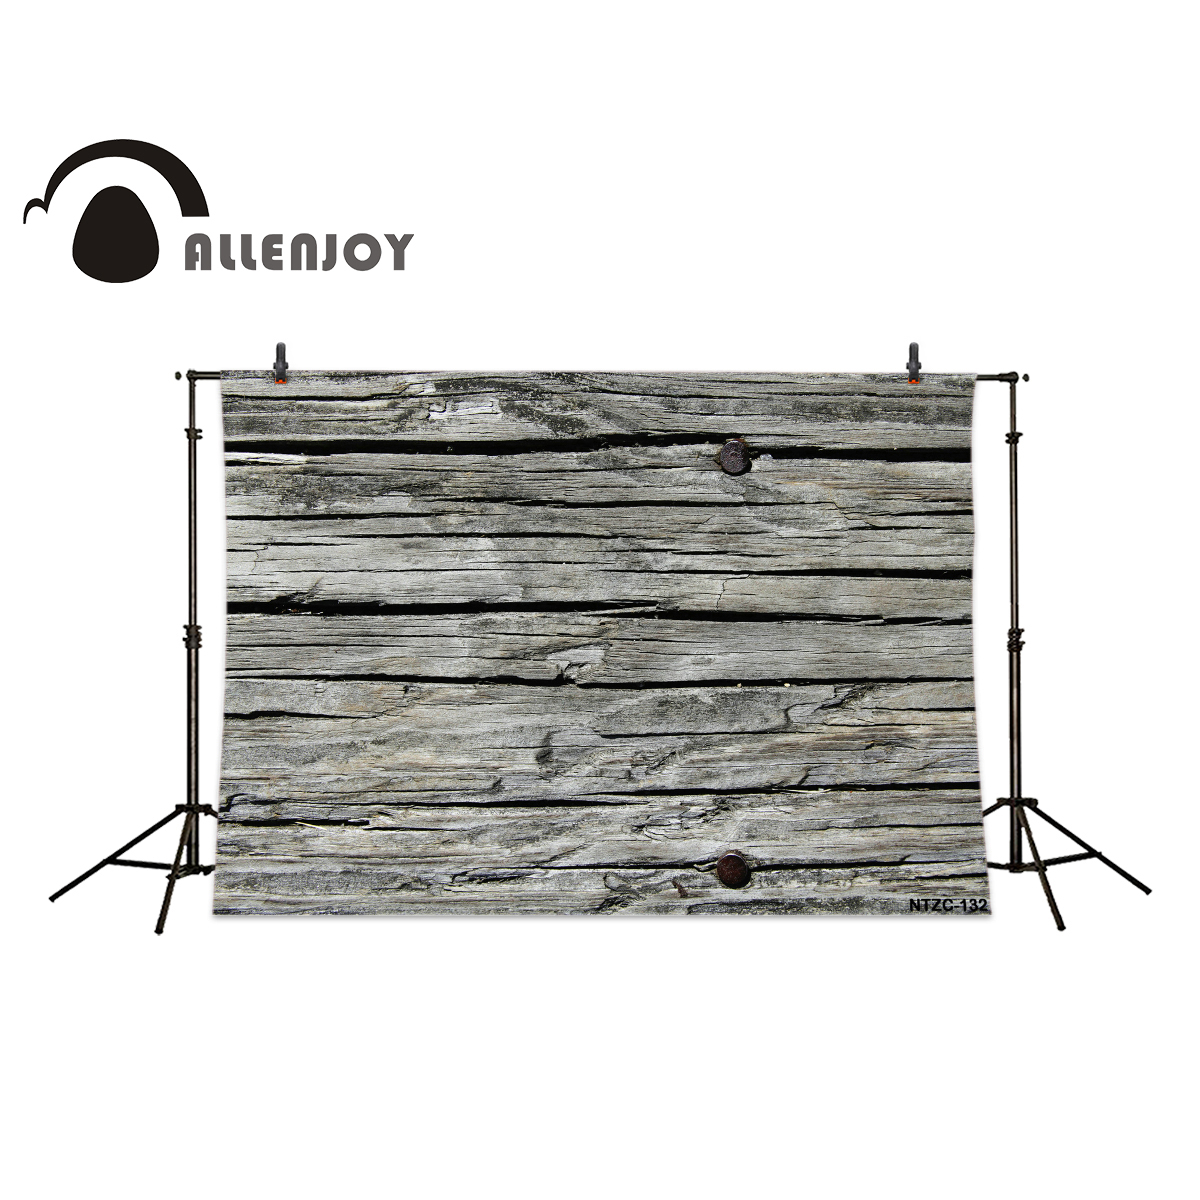 Allenjoy photography backdrops Crackle nail wooden slats wood brick wall backgrounds for photo studio allenjoy photography backdrops neat wooden structure wooden wall wood brick wall backgrounds for photo studio